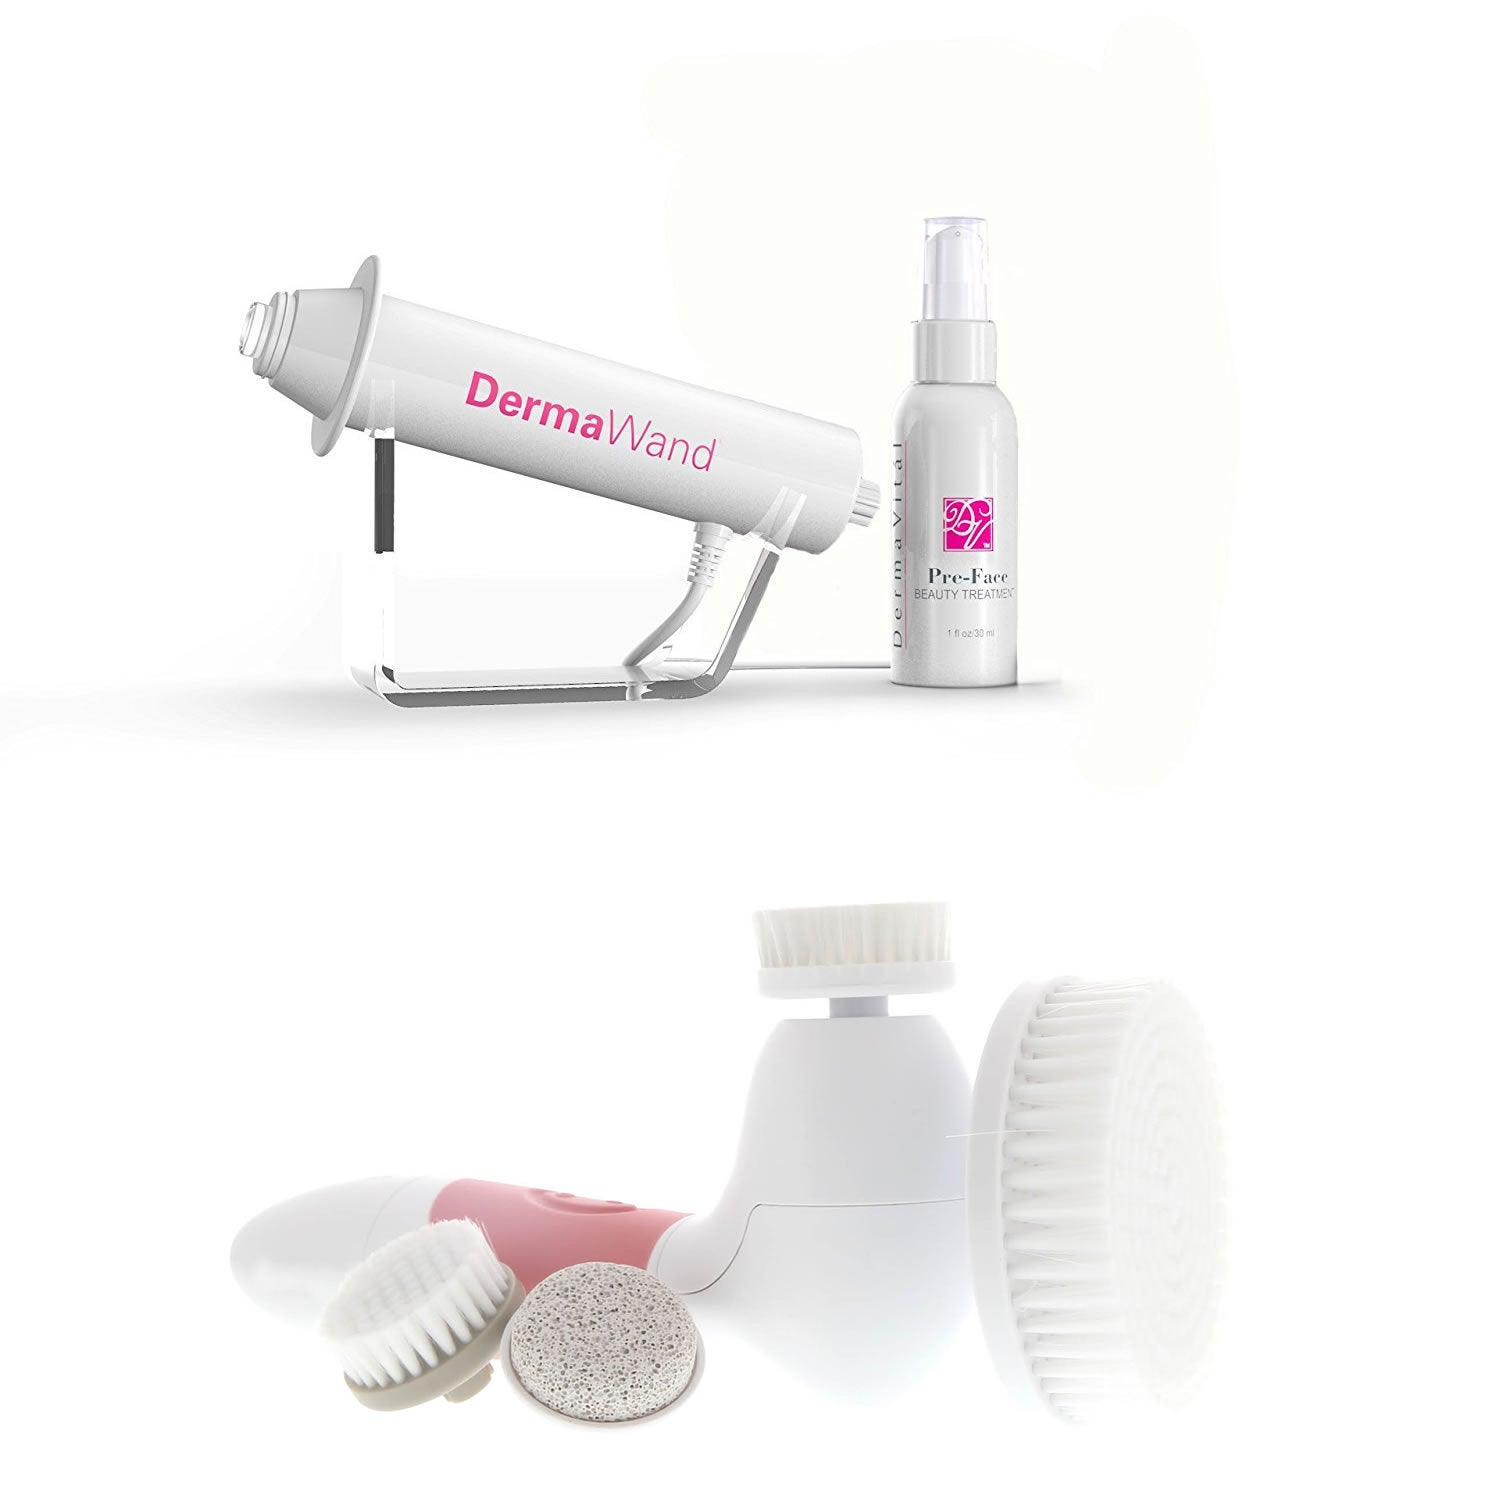 Dermabrand Dermawand Kit with Vanity Planet Spin for Perf...